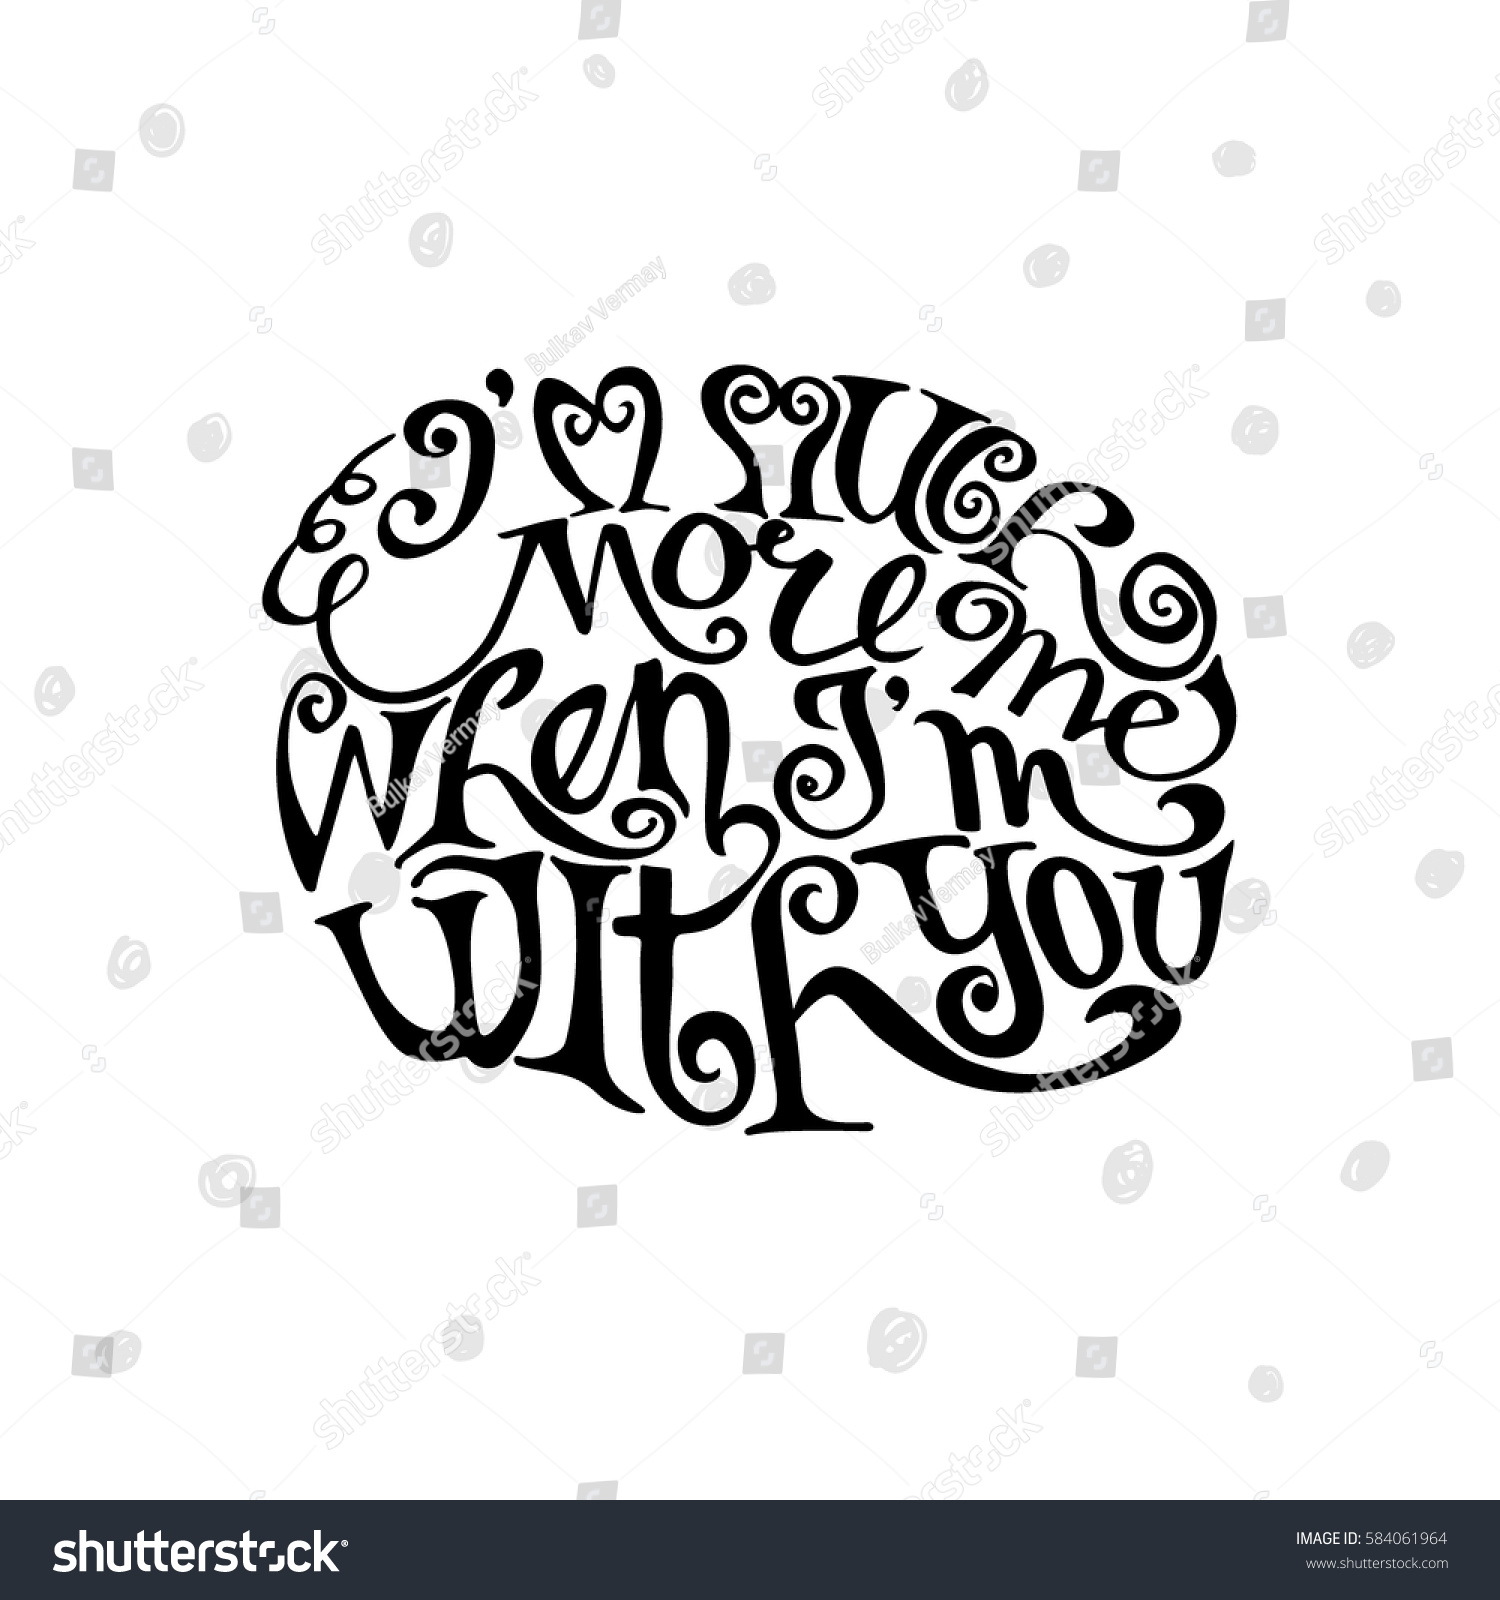 Much more me when you hand stock vector